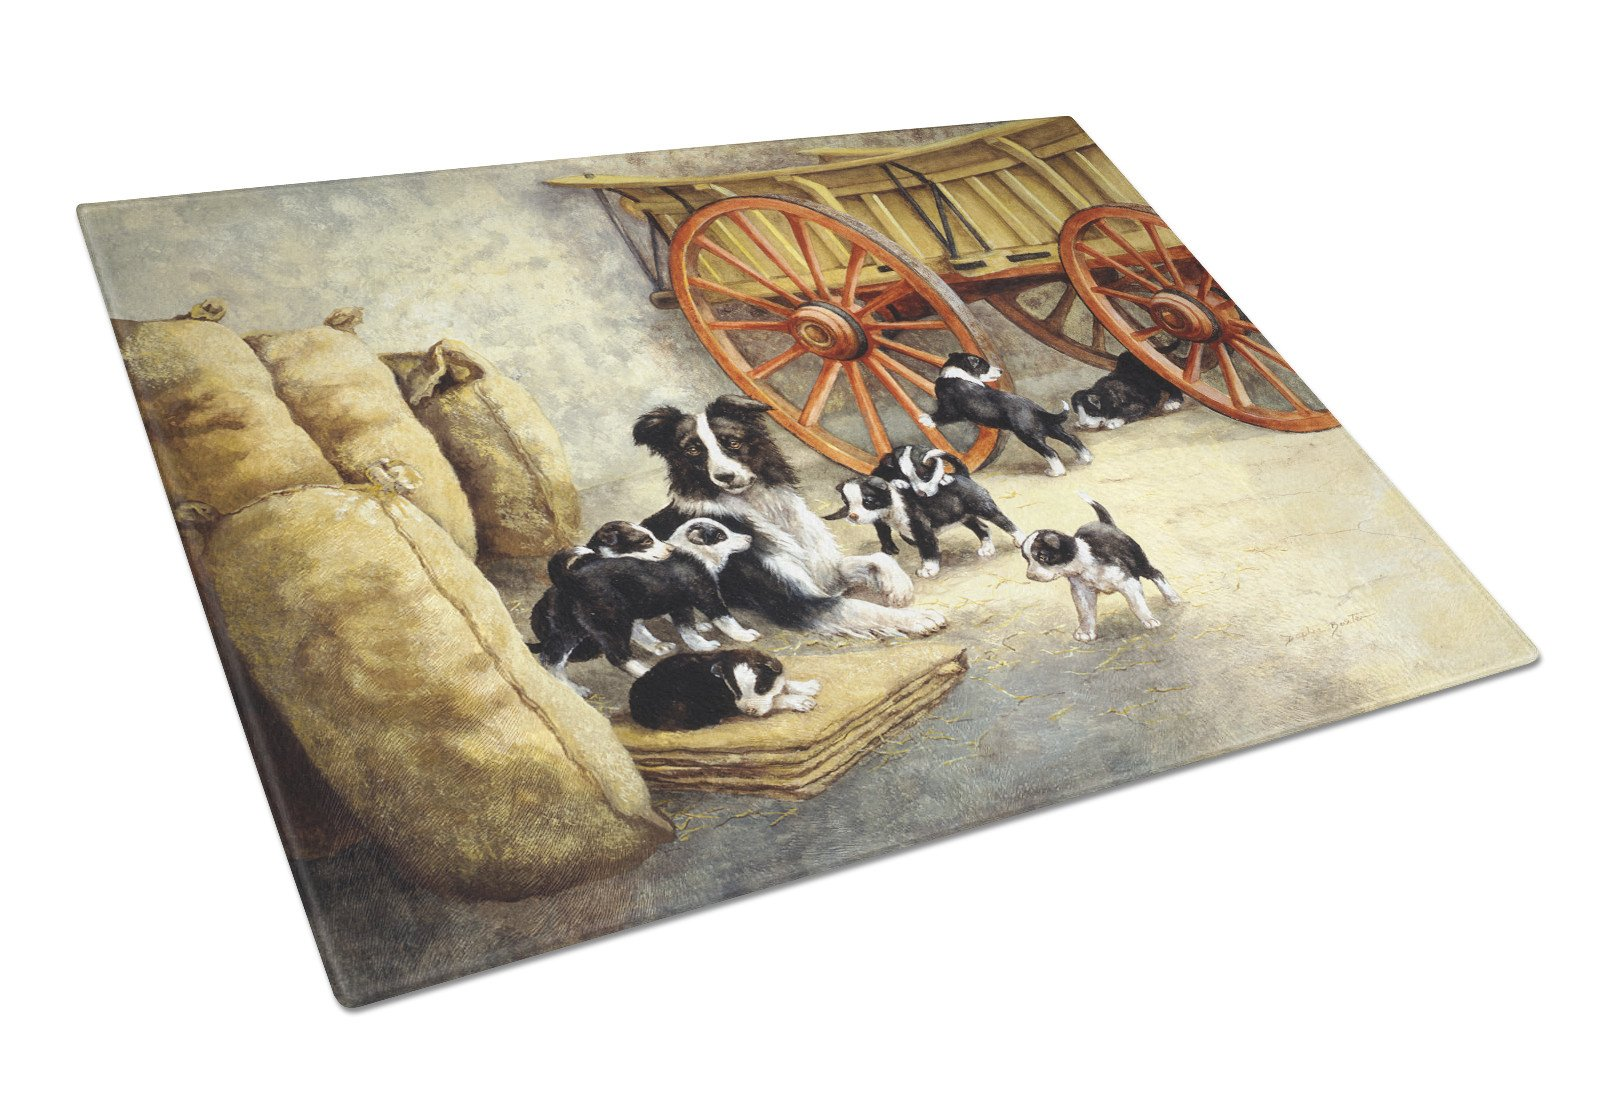 Border Collie Dog Litter Glass Cutting Board Large BDBA0118LCB by Caroline's Treasures